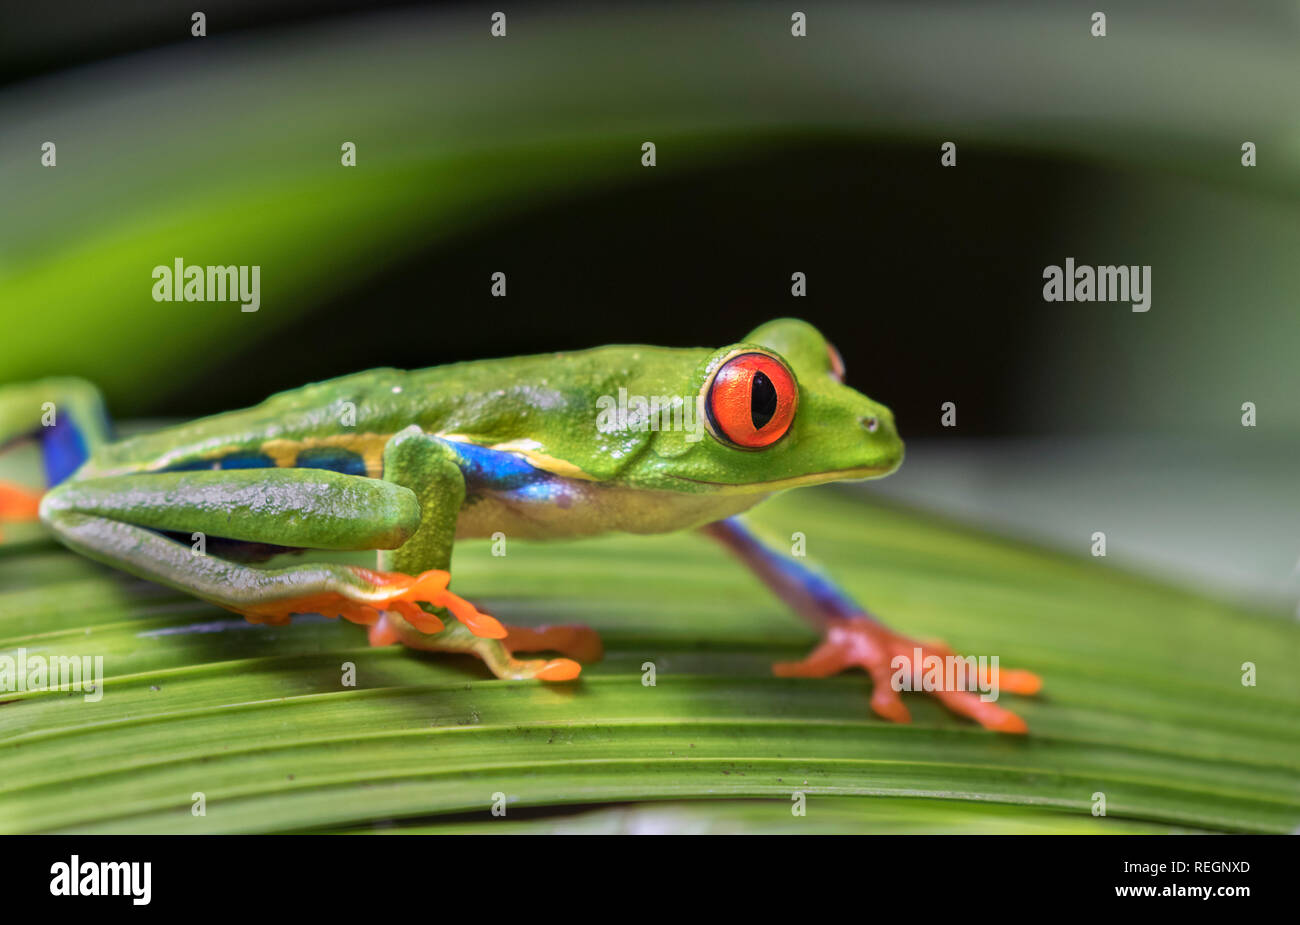 Red-eyed tree frog (Agalychnis callidryas) on a leaf, Alajuela, Costa Rica Stock Photo